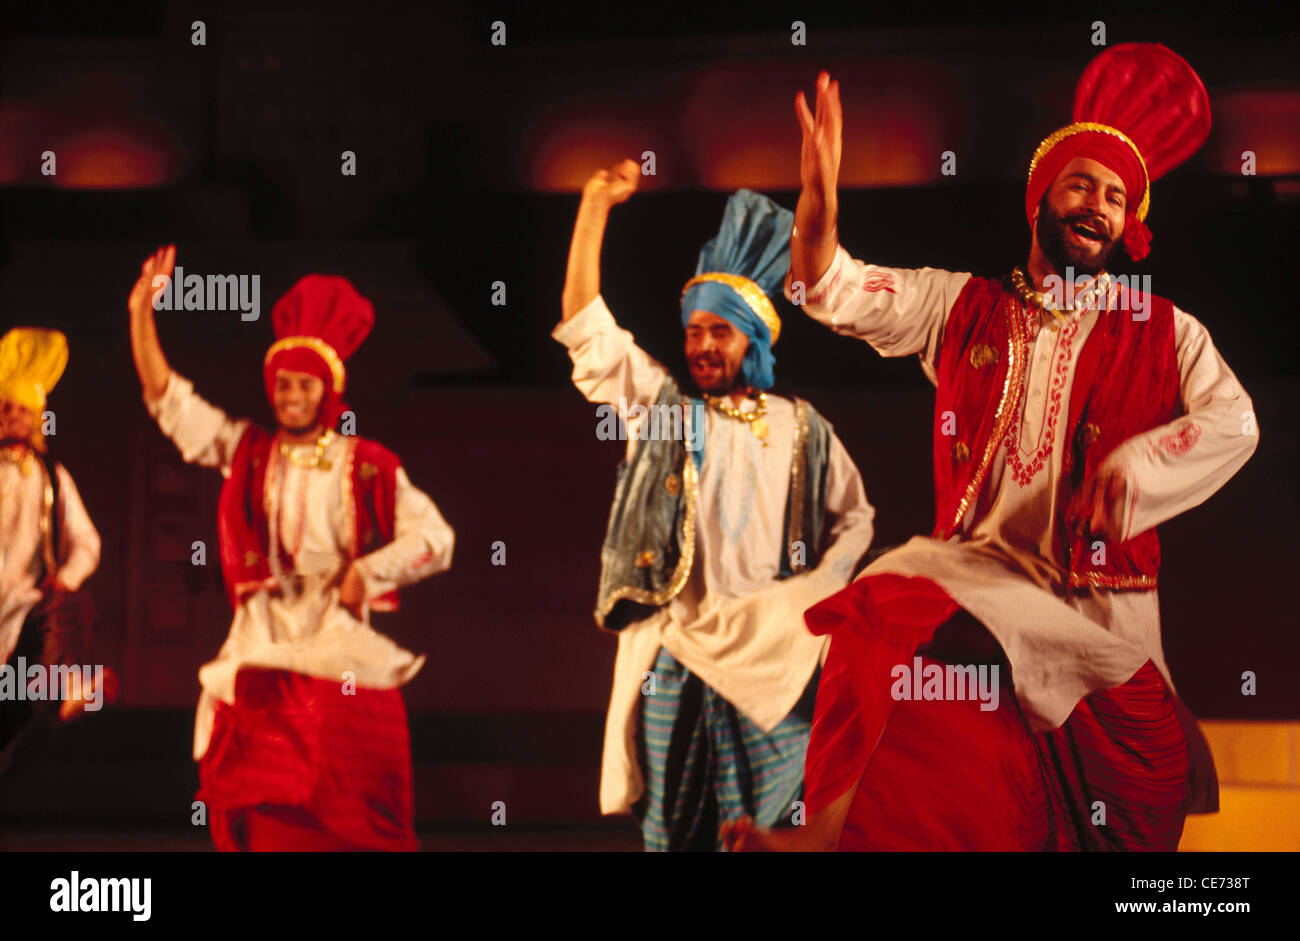 2ec2e37e8 Punjabi Dance Stock Photos & Punjabi Dance Stock Images - Alamy